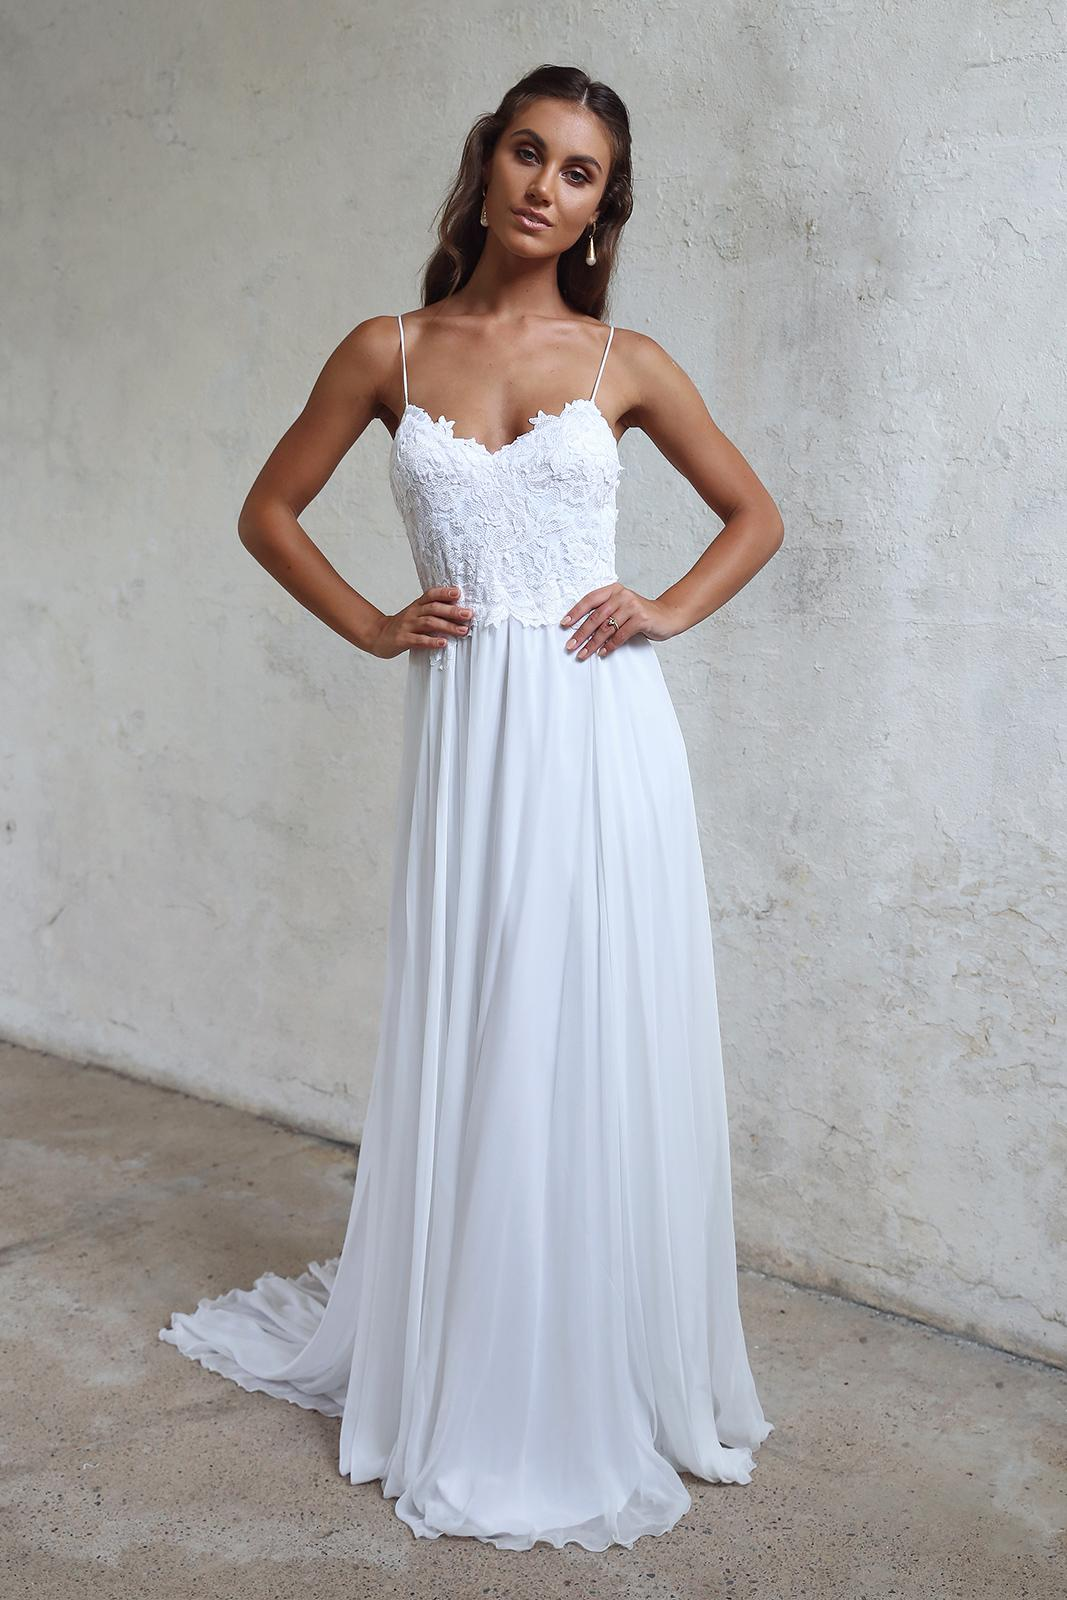 2018 Sexy Beach Wedding Dress, Summer Beach Wedding